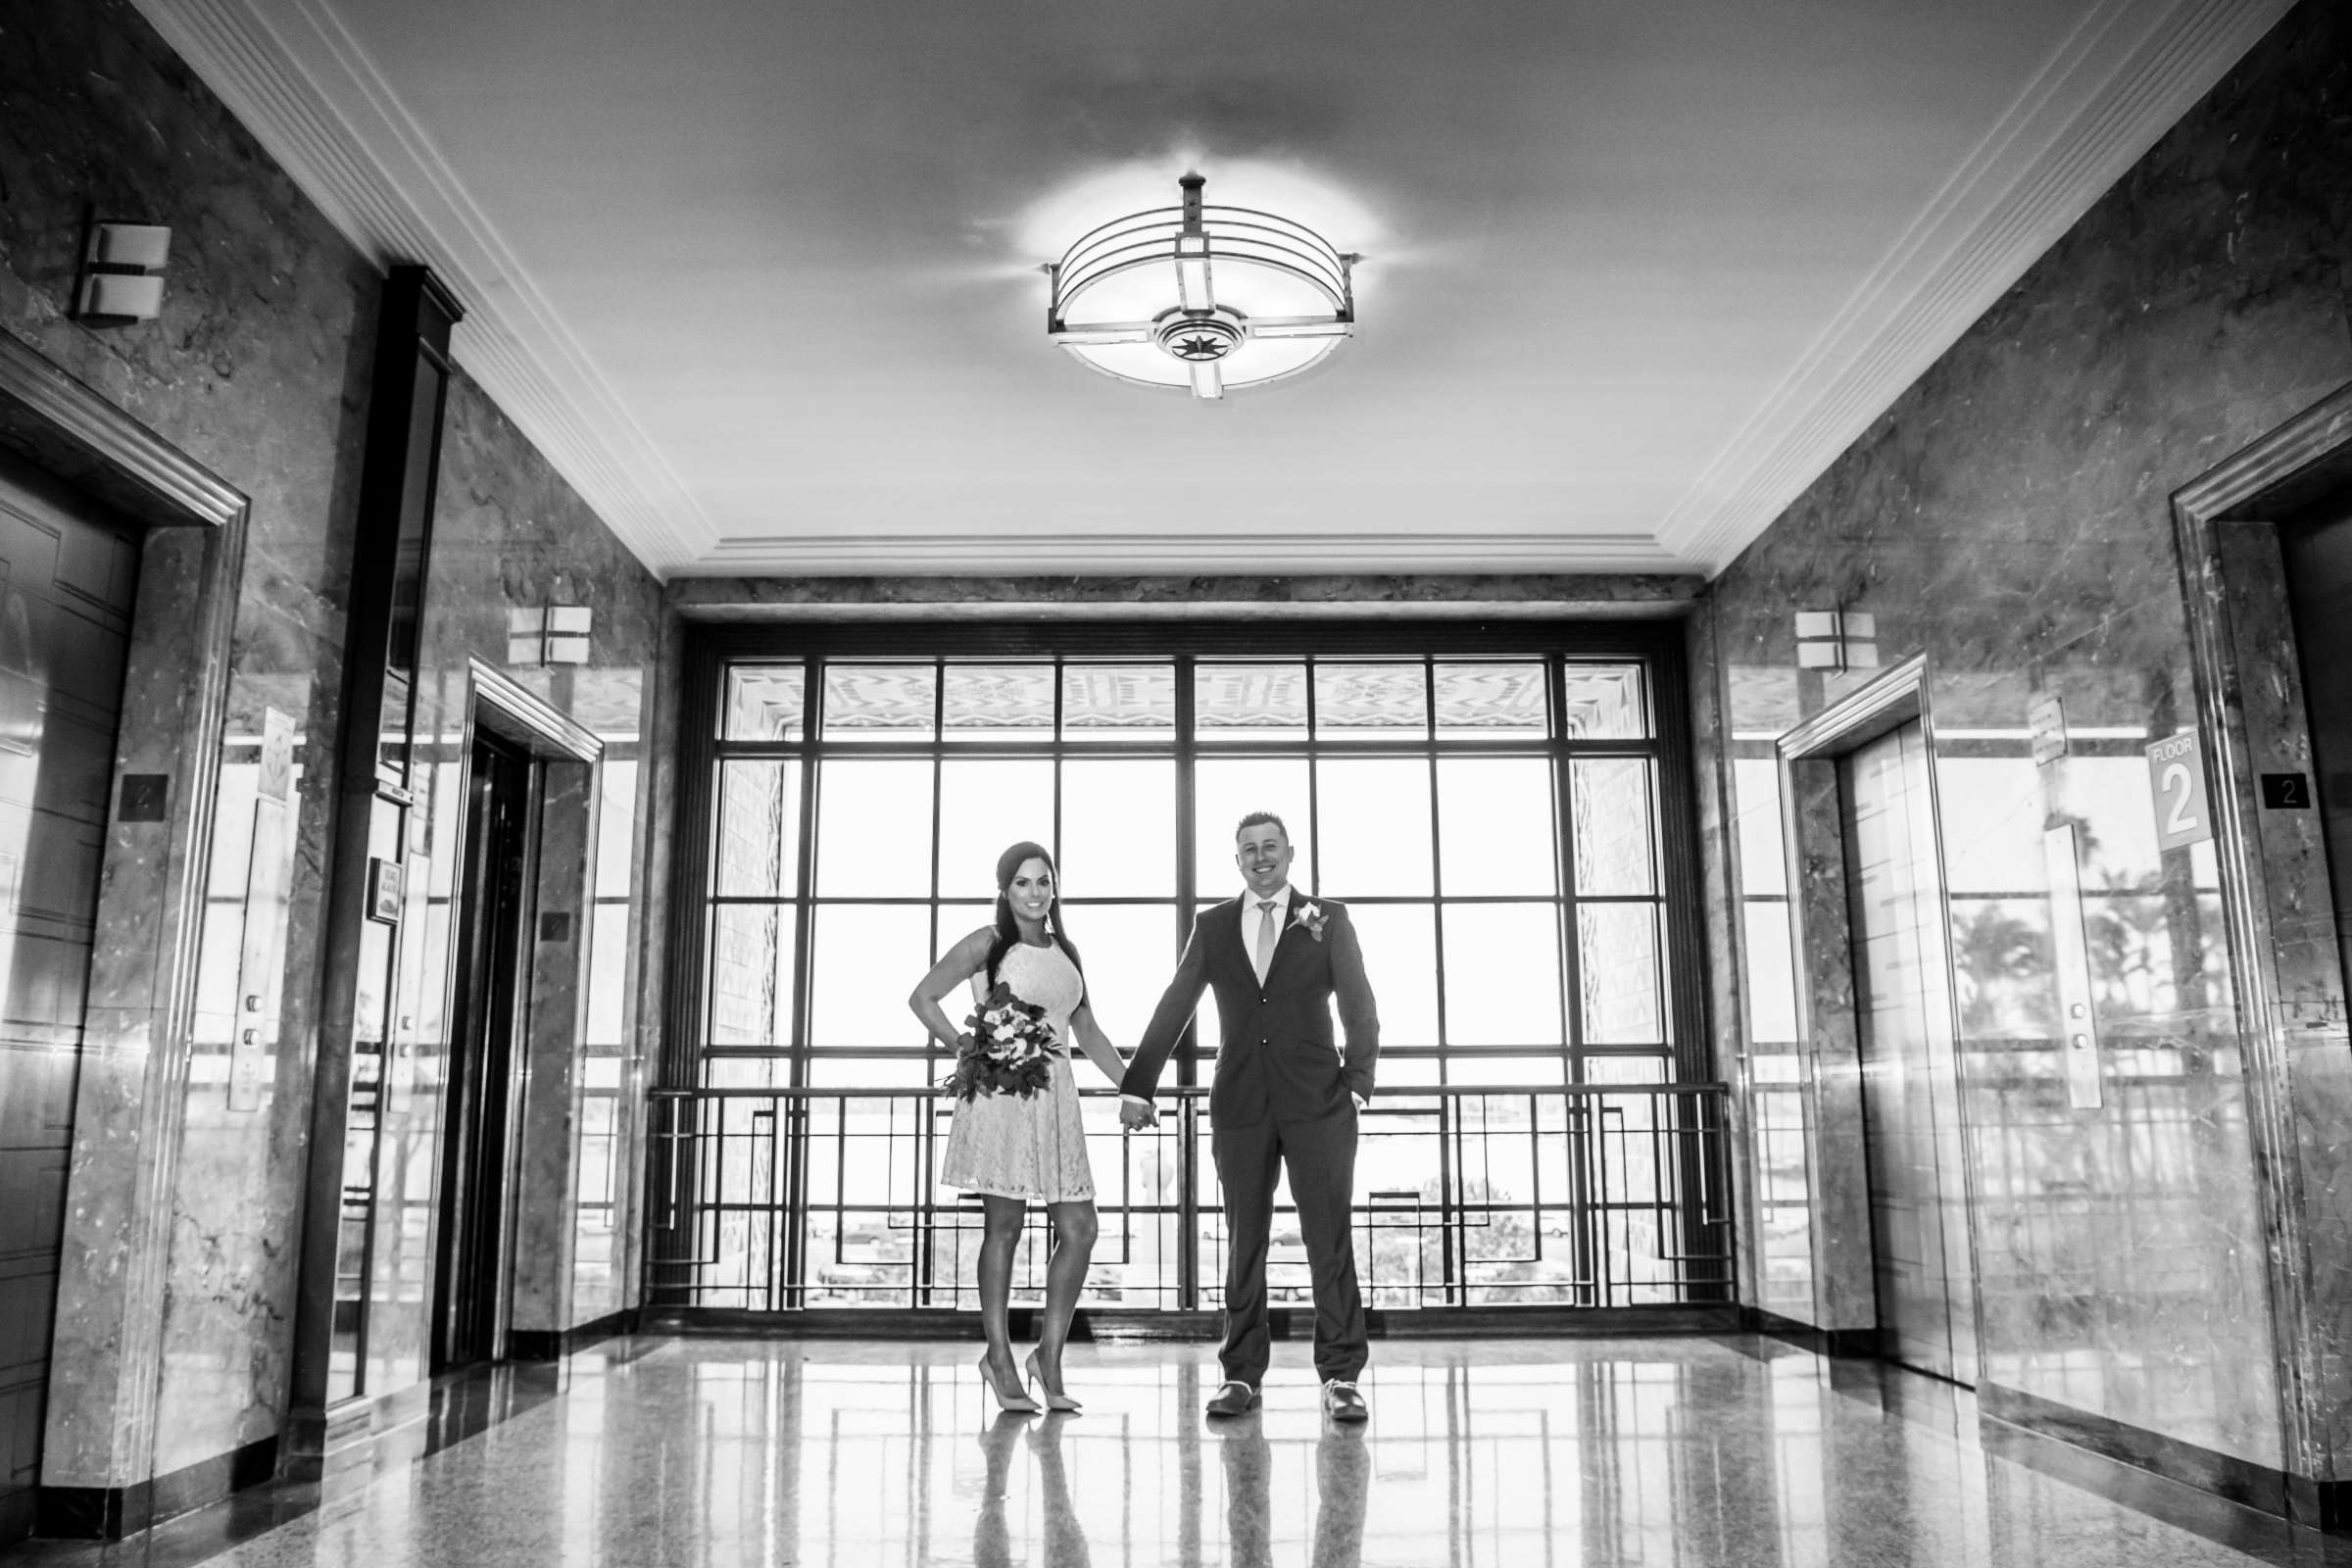 San Diego Courthouse Wedding, Alyah and Brian Wedding Photo #13 by True Photography